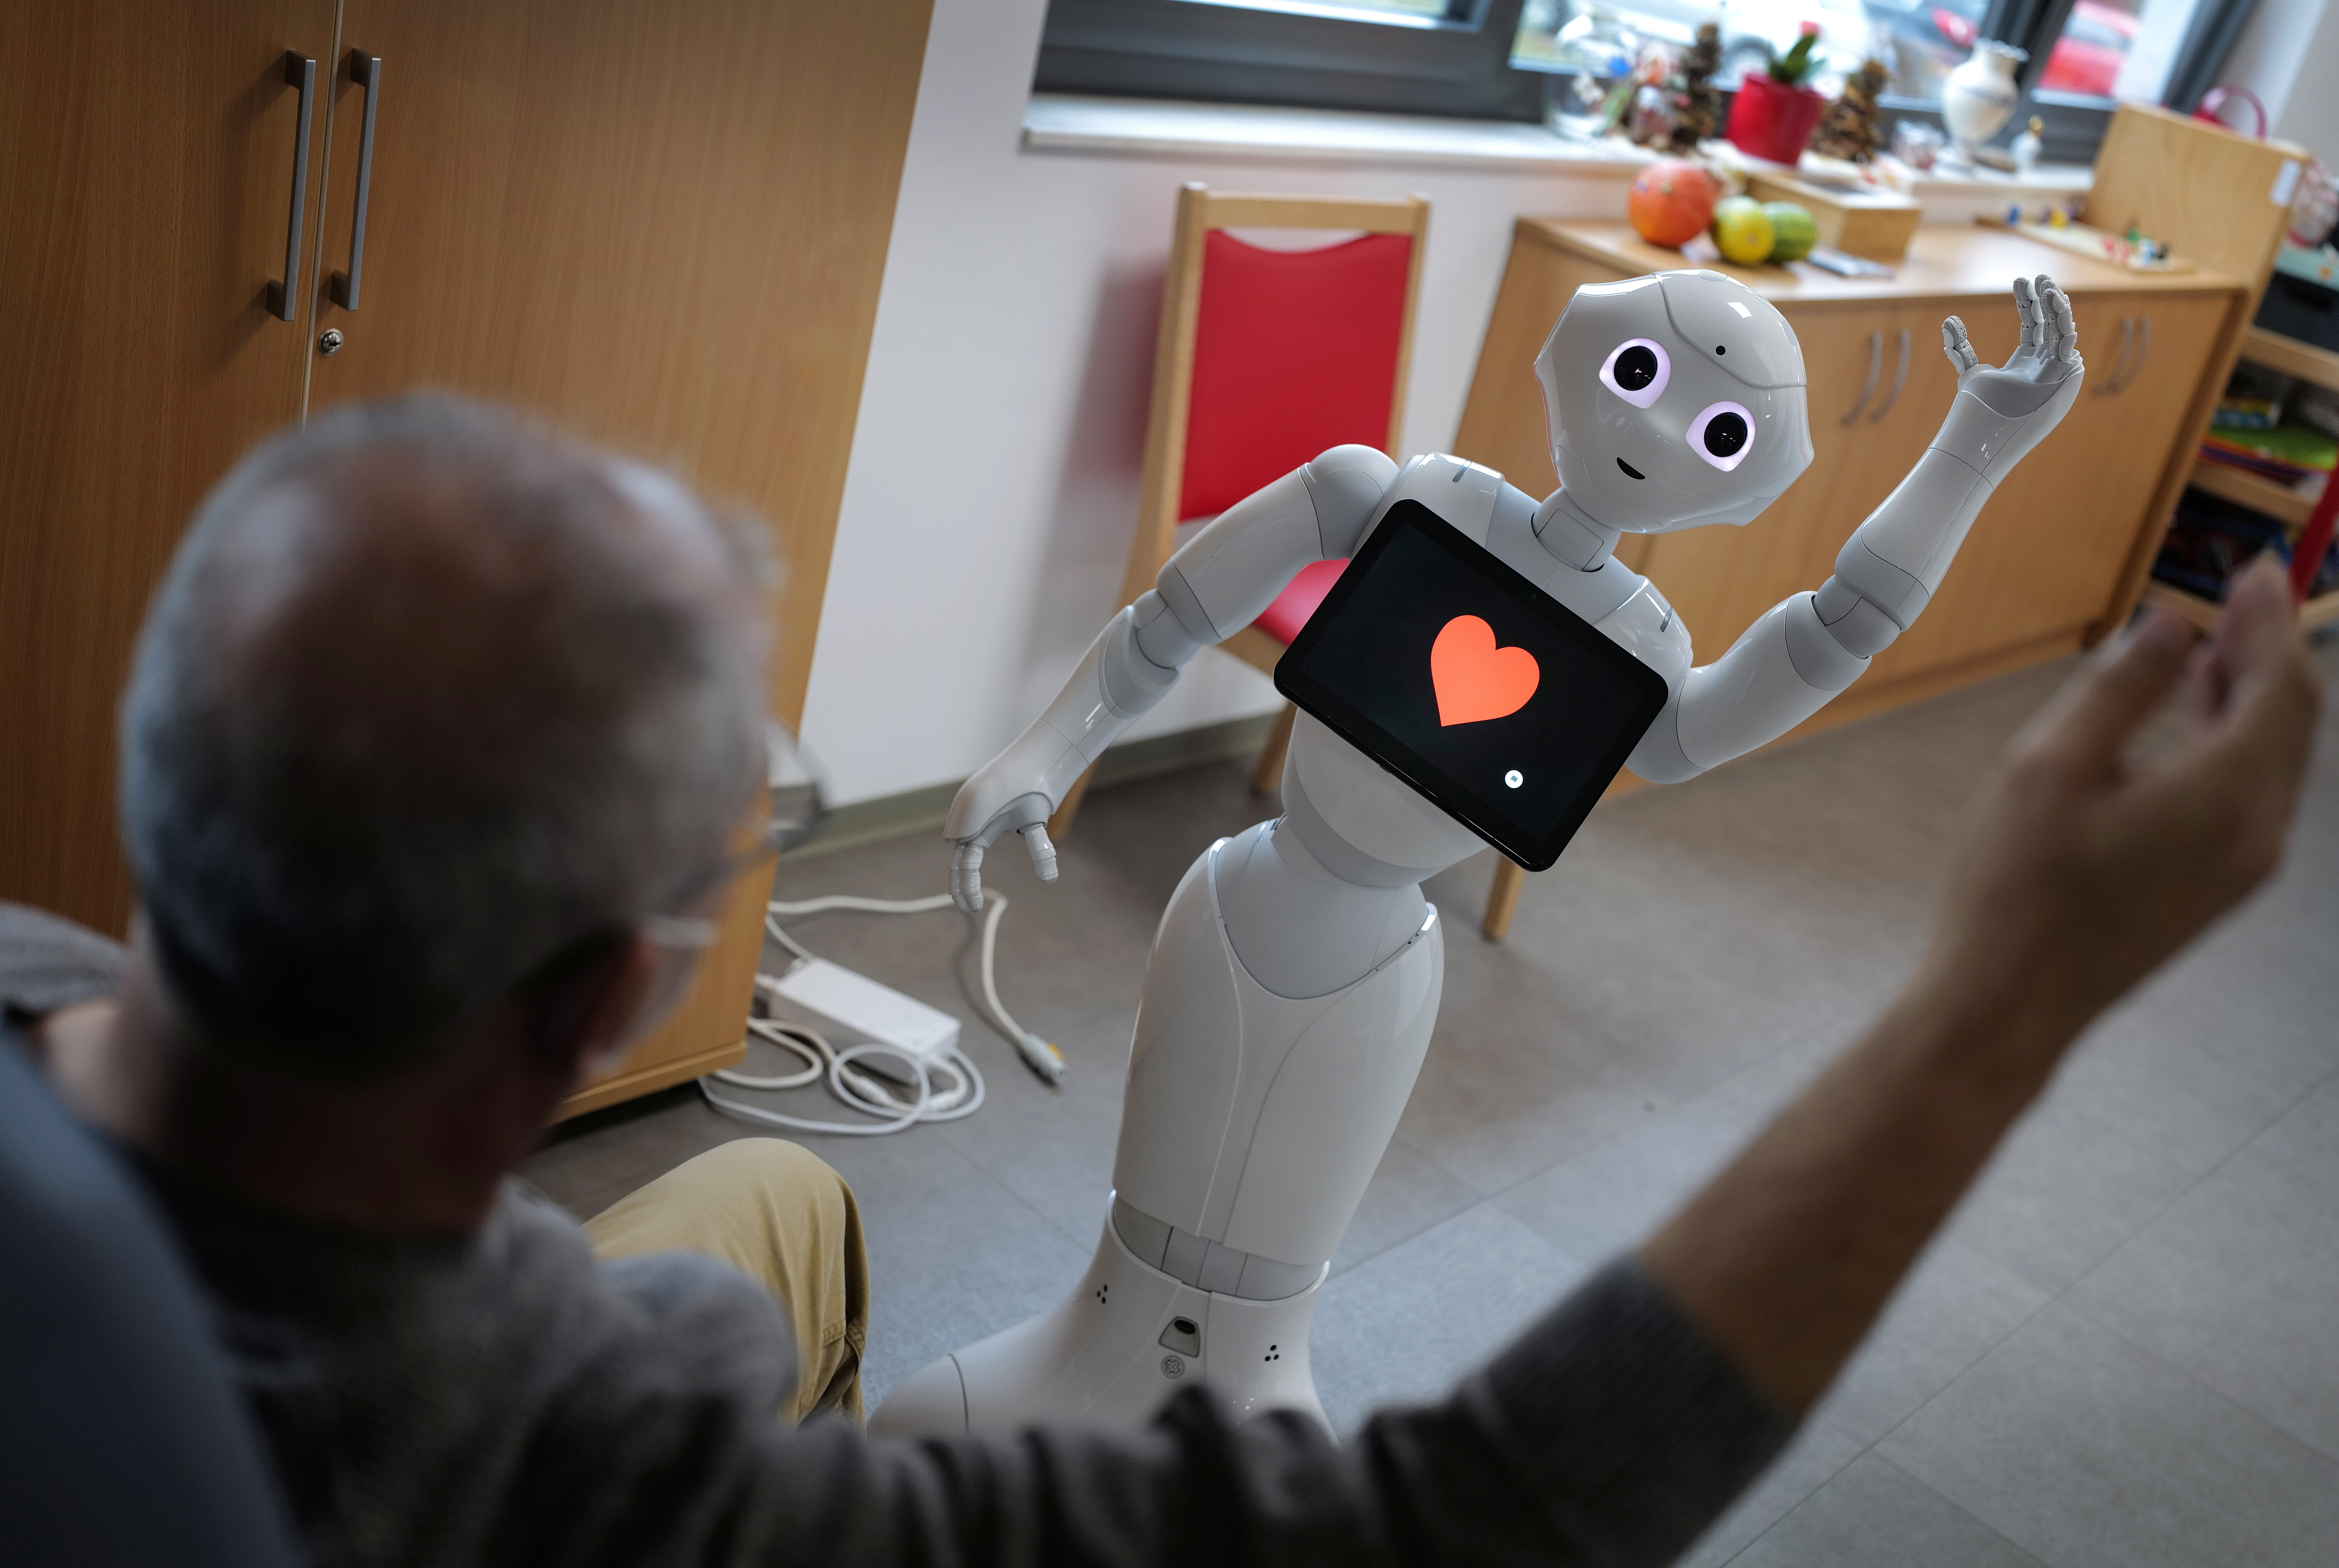 """A guest of the day care center of German welfare organisation Caritas follows the instructions of humanoid robot """"Pepper"""" for his rehabilitation work out as the spread of the coronavirus disease (COVID-19) continues in Erlenbach, 50 km south of Frankfurt, Germany, November 25, 2020. Picture taken November 25, 2020. REUTERS/Kai Pfaffenbach - RC2VAK9MCXBV"""